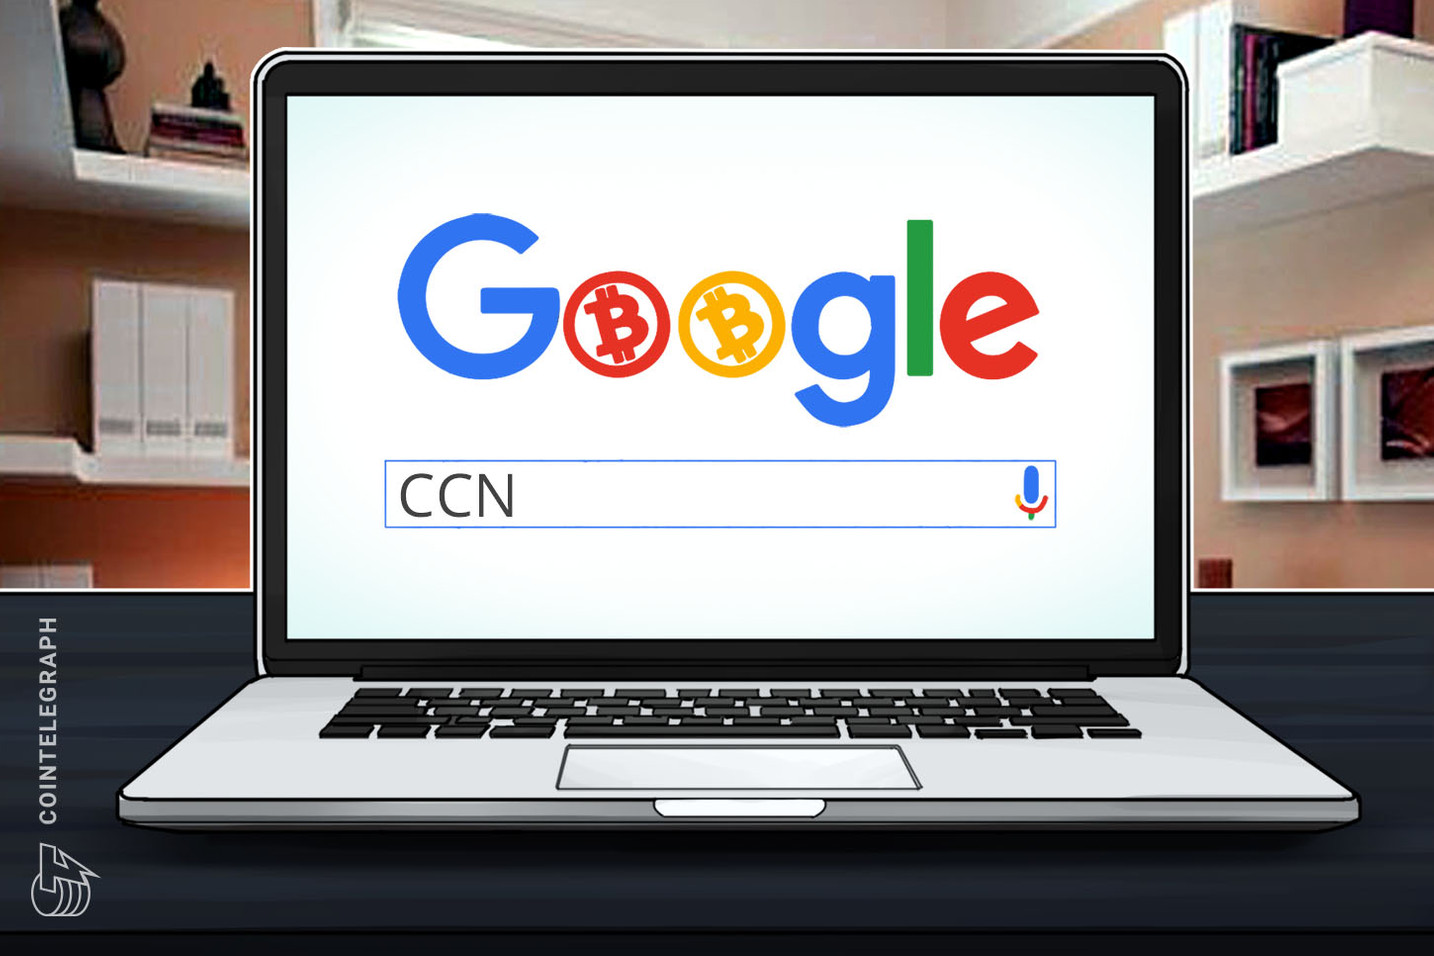 CCN Casts Doubt on Shutdown Plans as Google Appears to Correct Visibility